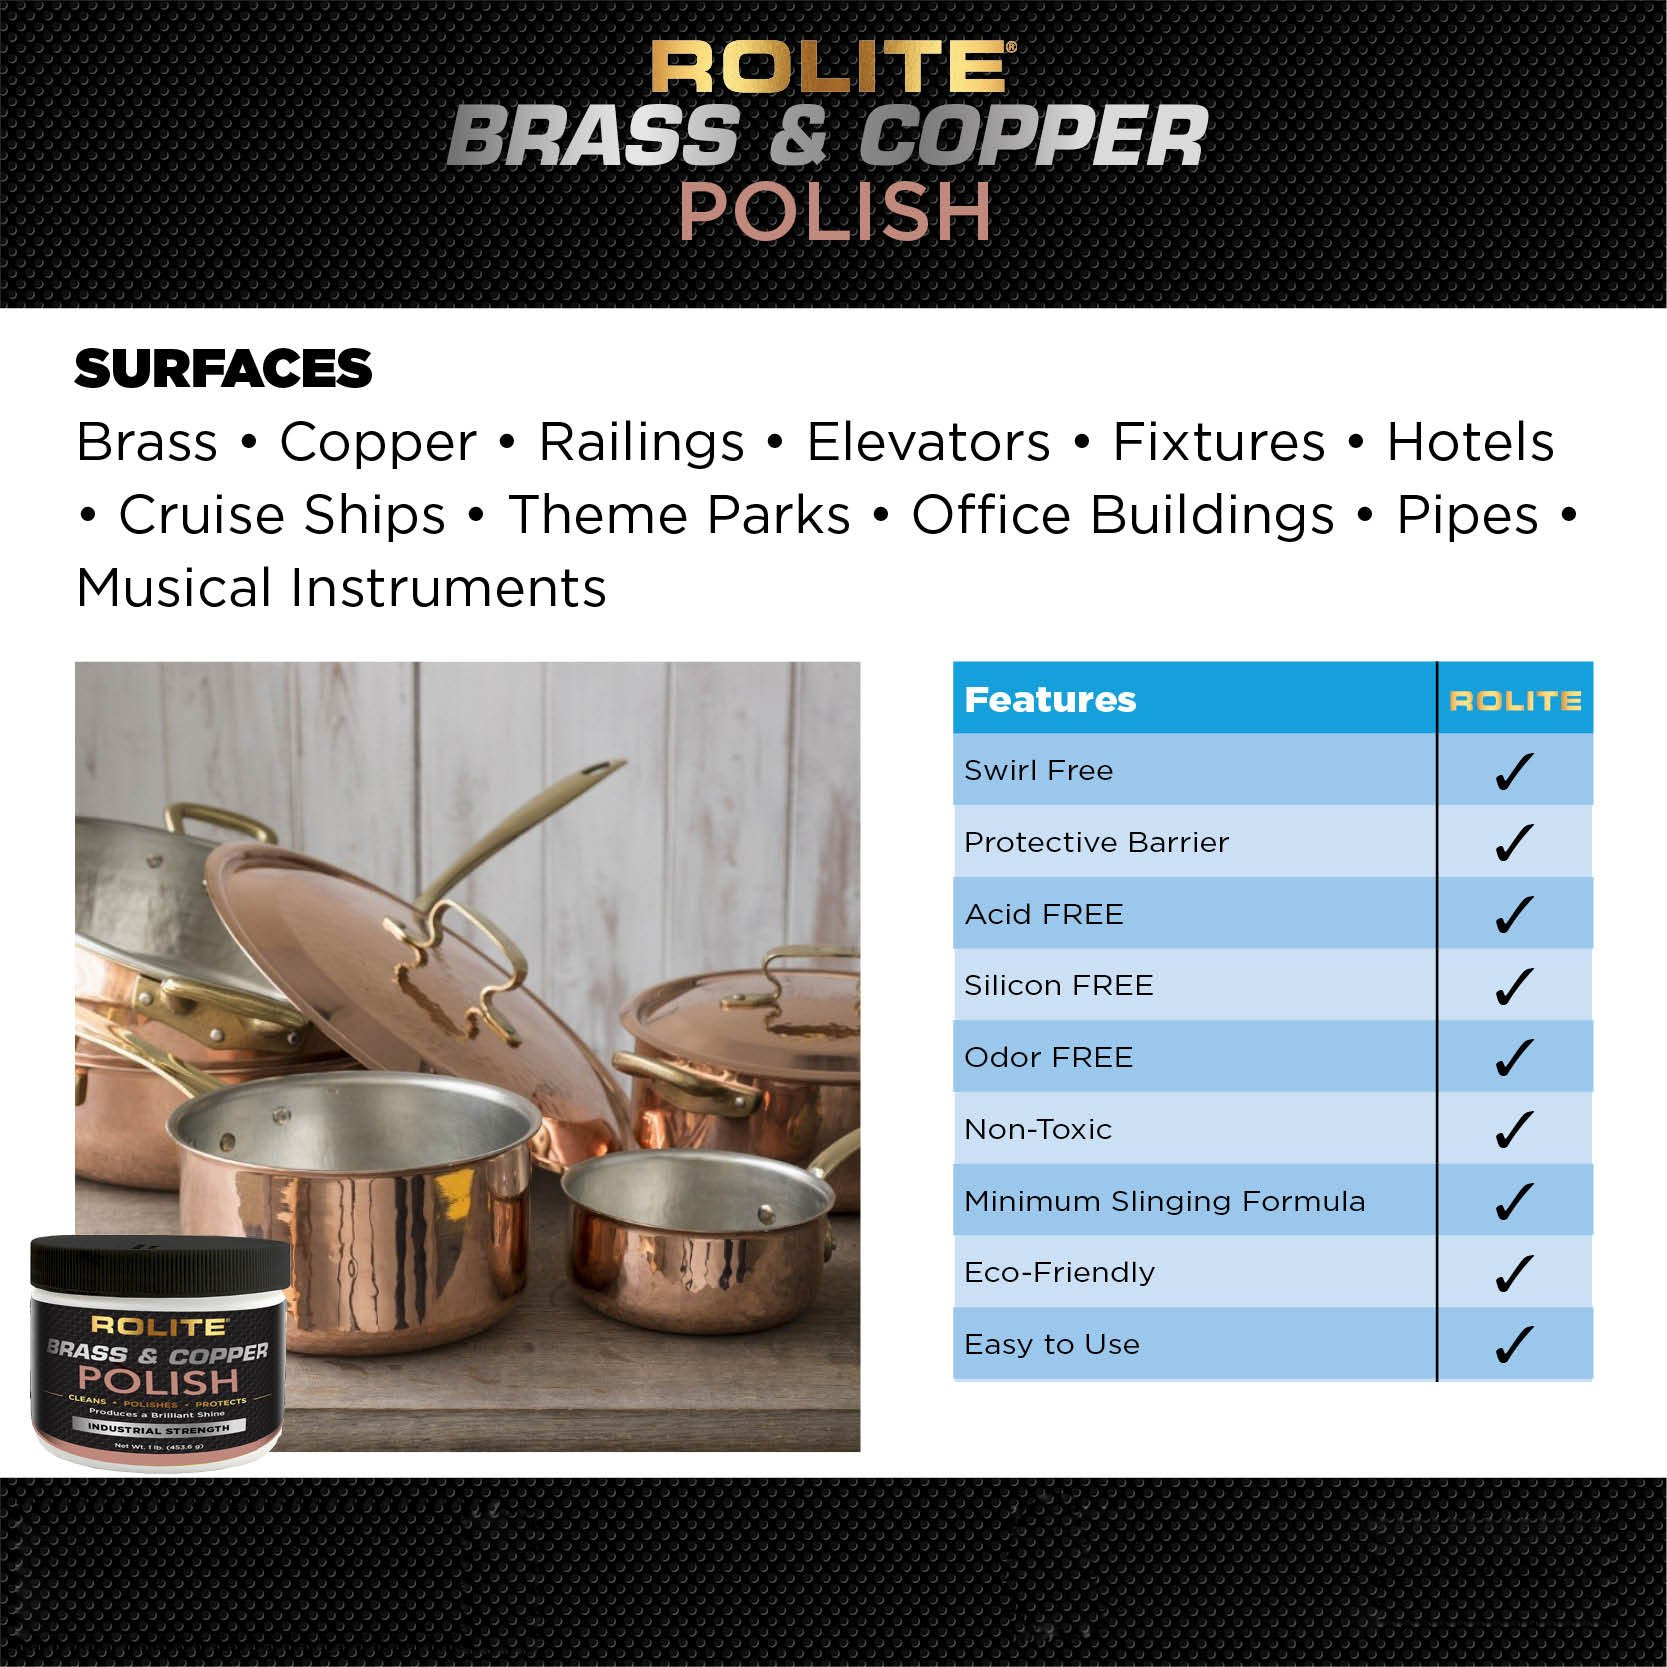 Rolite Brass & Copper Polish (4.5oz) Instant Polishing & Tarnish Removal on Railings, Elevators, Fixtures, Hotels, Cruise Ships, Office Buildings